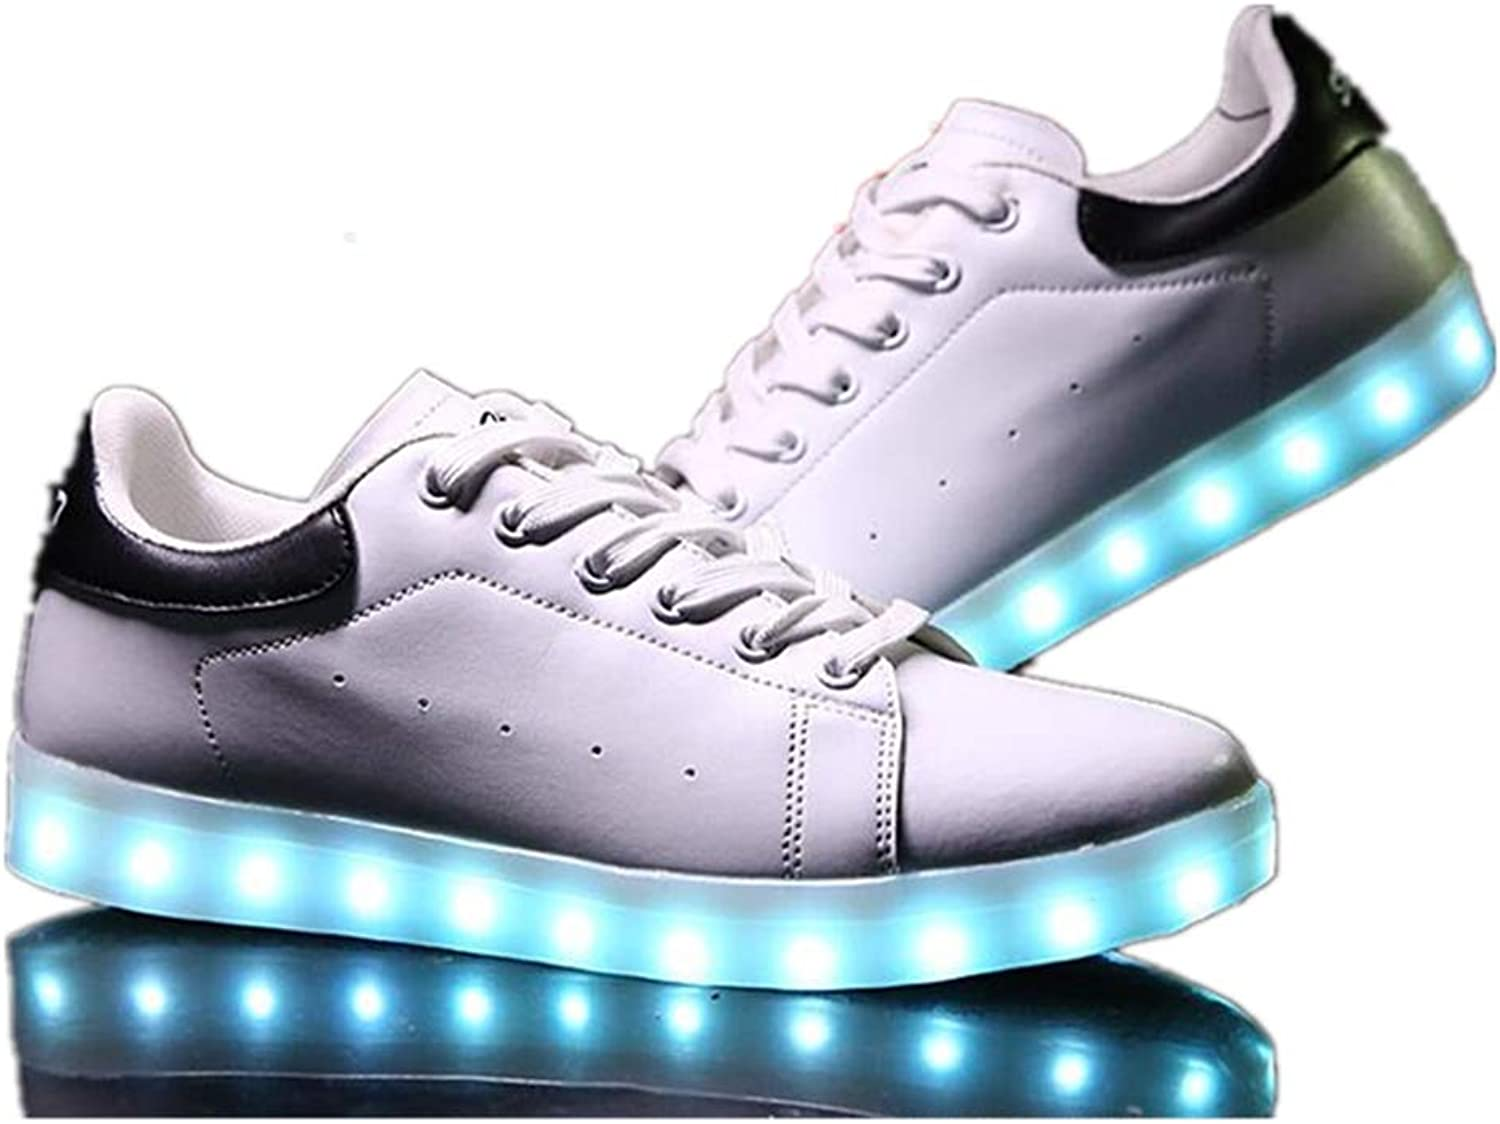 LUOBM LED Luminous shoes Low Help USB Charging Student Style Flash shoes Couple shoes